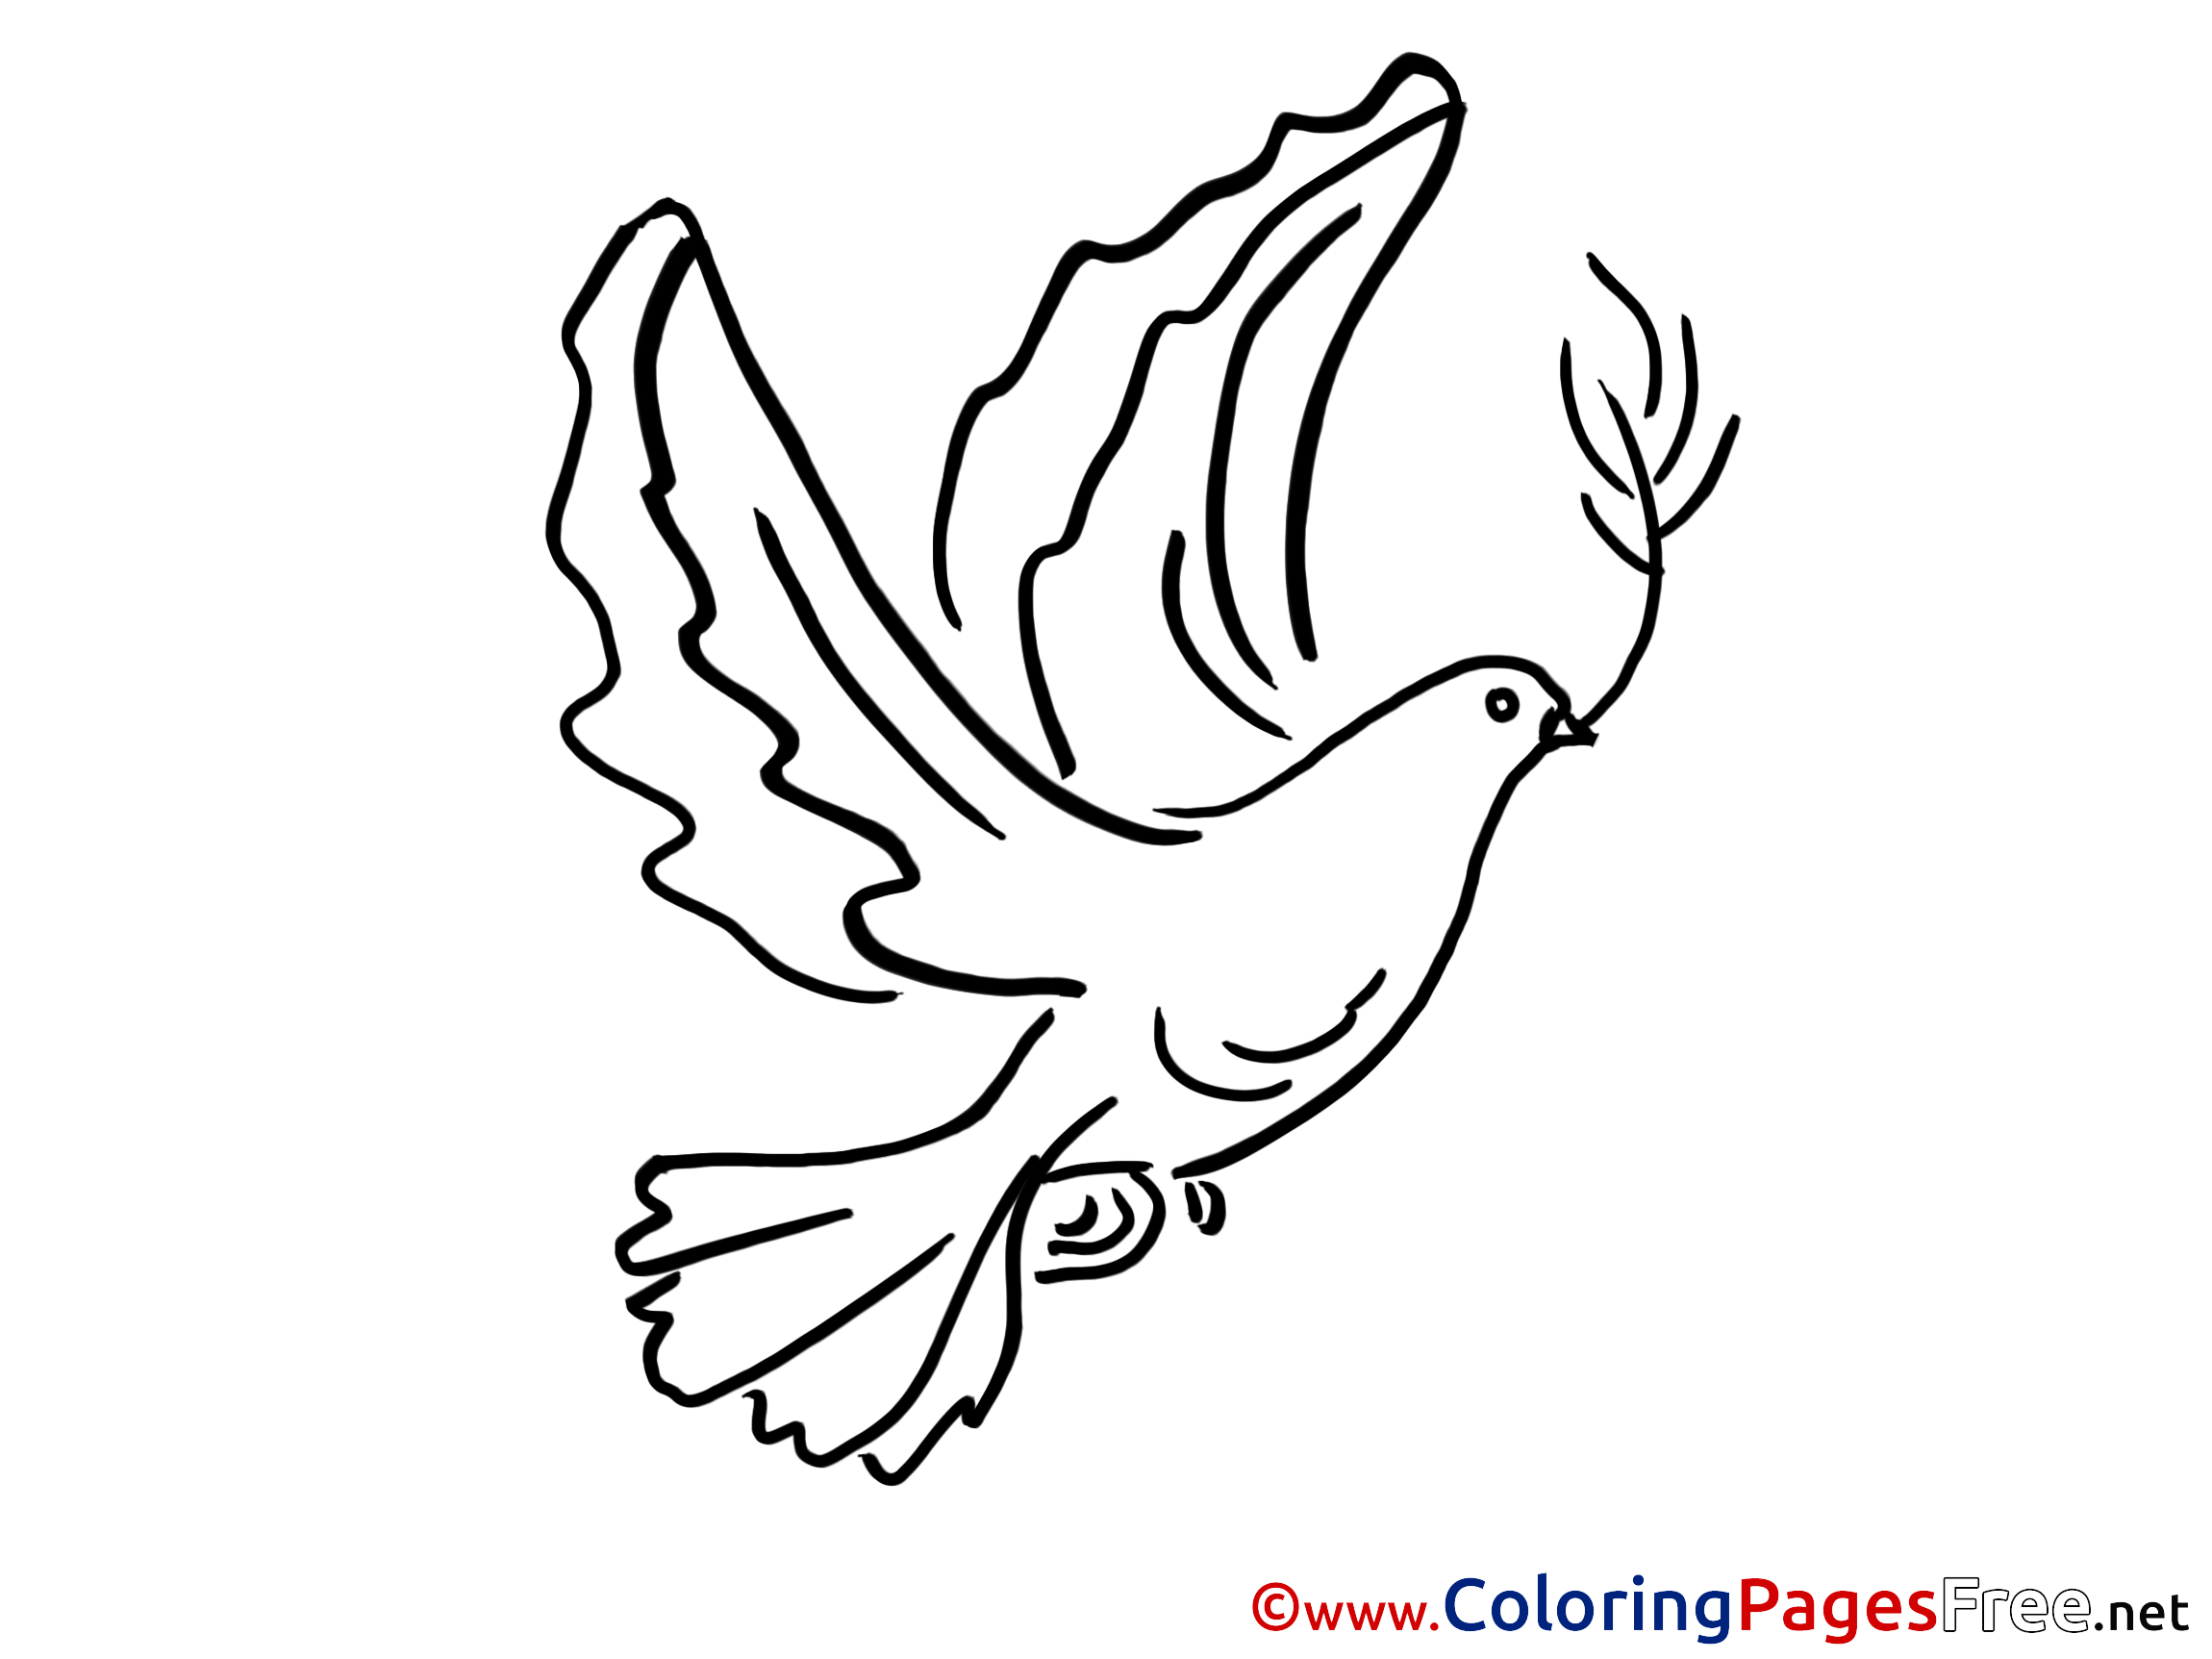 Drawn pigeon pentecost  Pigeon Sheets Coloring free